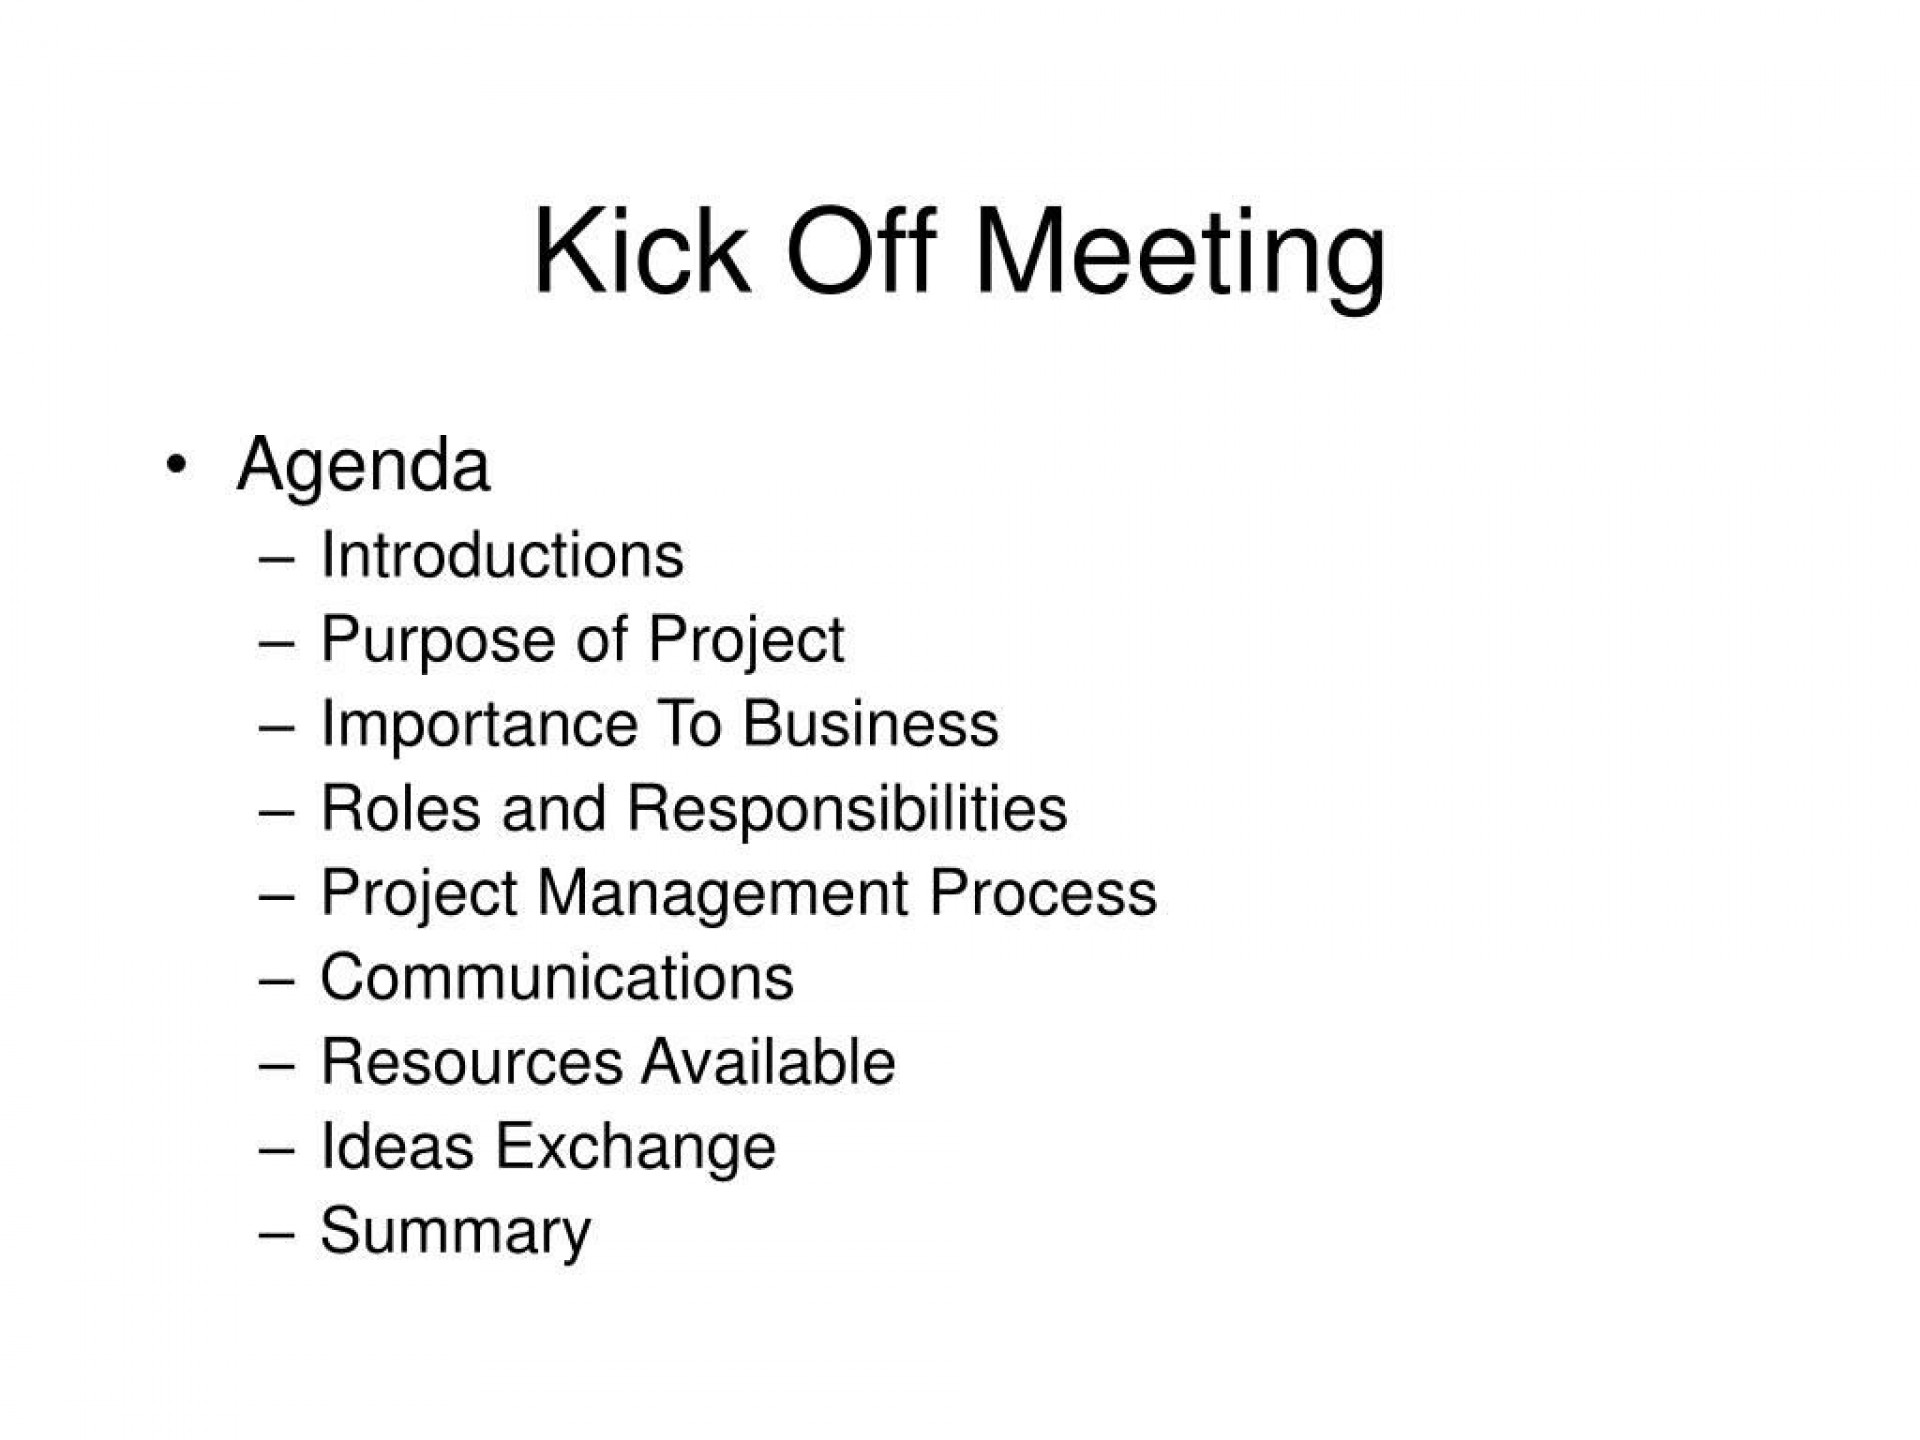 006 Unforgettable Project Kickoff Meeting Template Ppt Highest Clarity  Free Kick Off Management1920